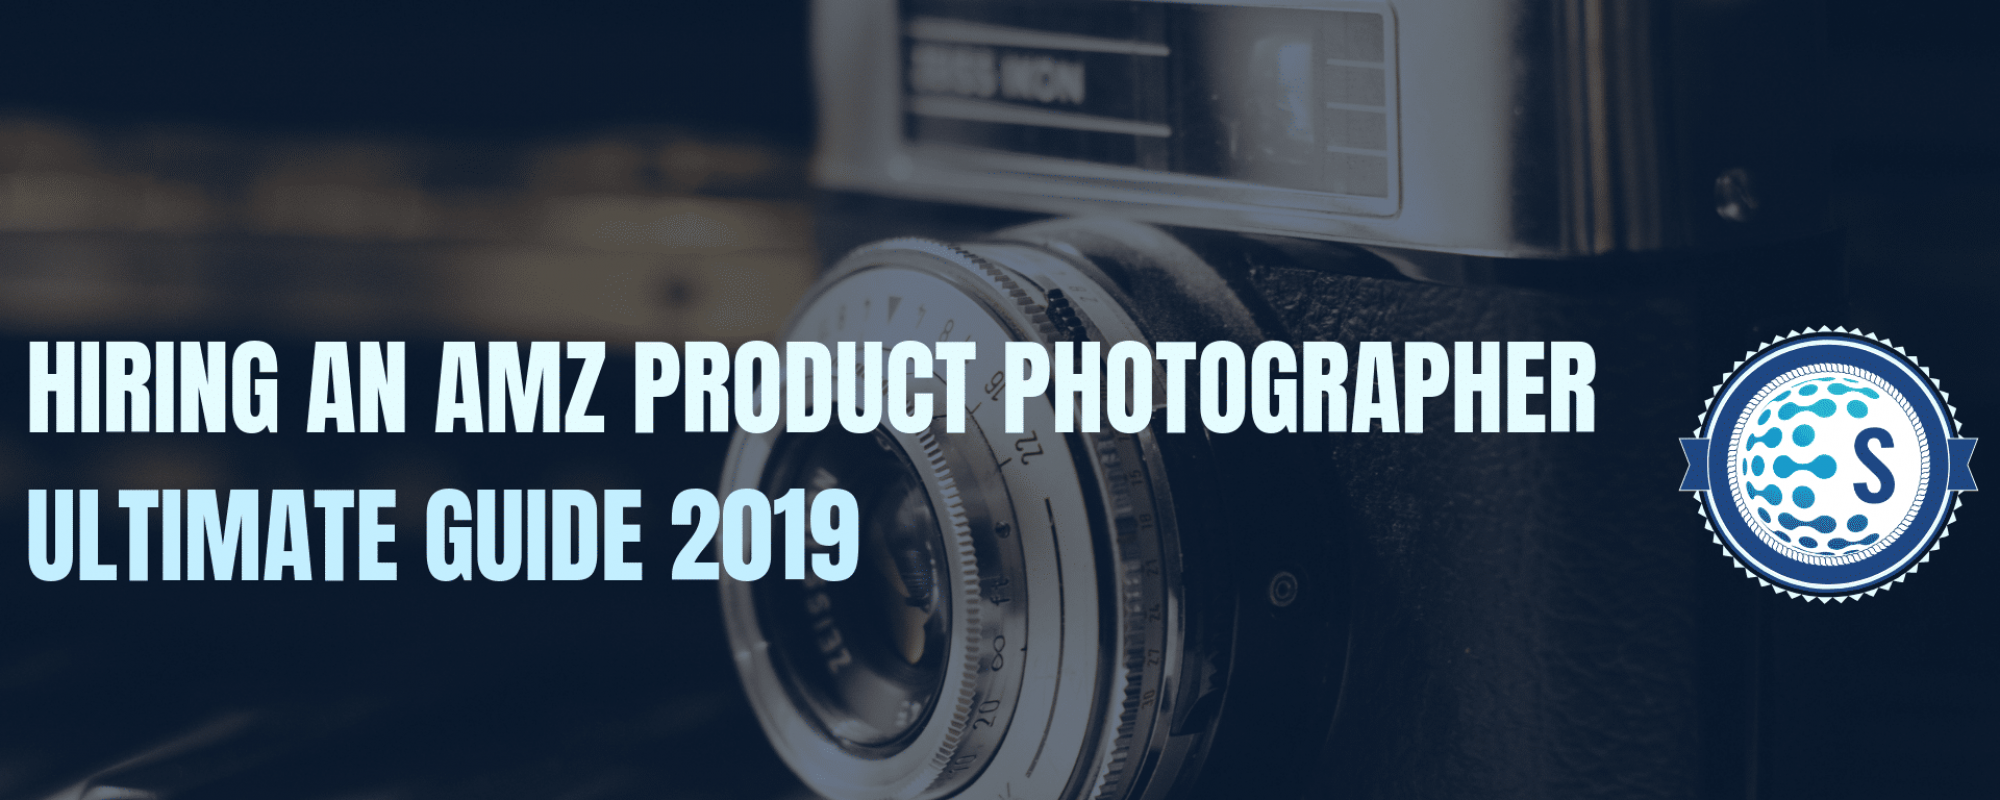 Hiring an Amazon Product Photographer – Ultimate Guide 2019